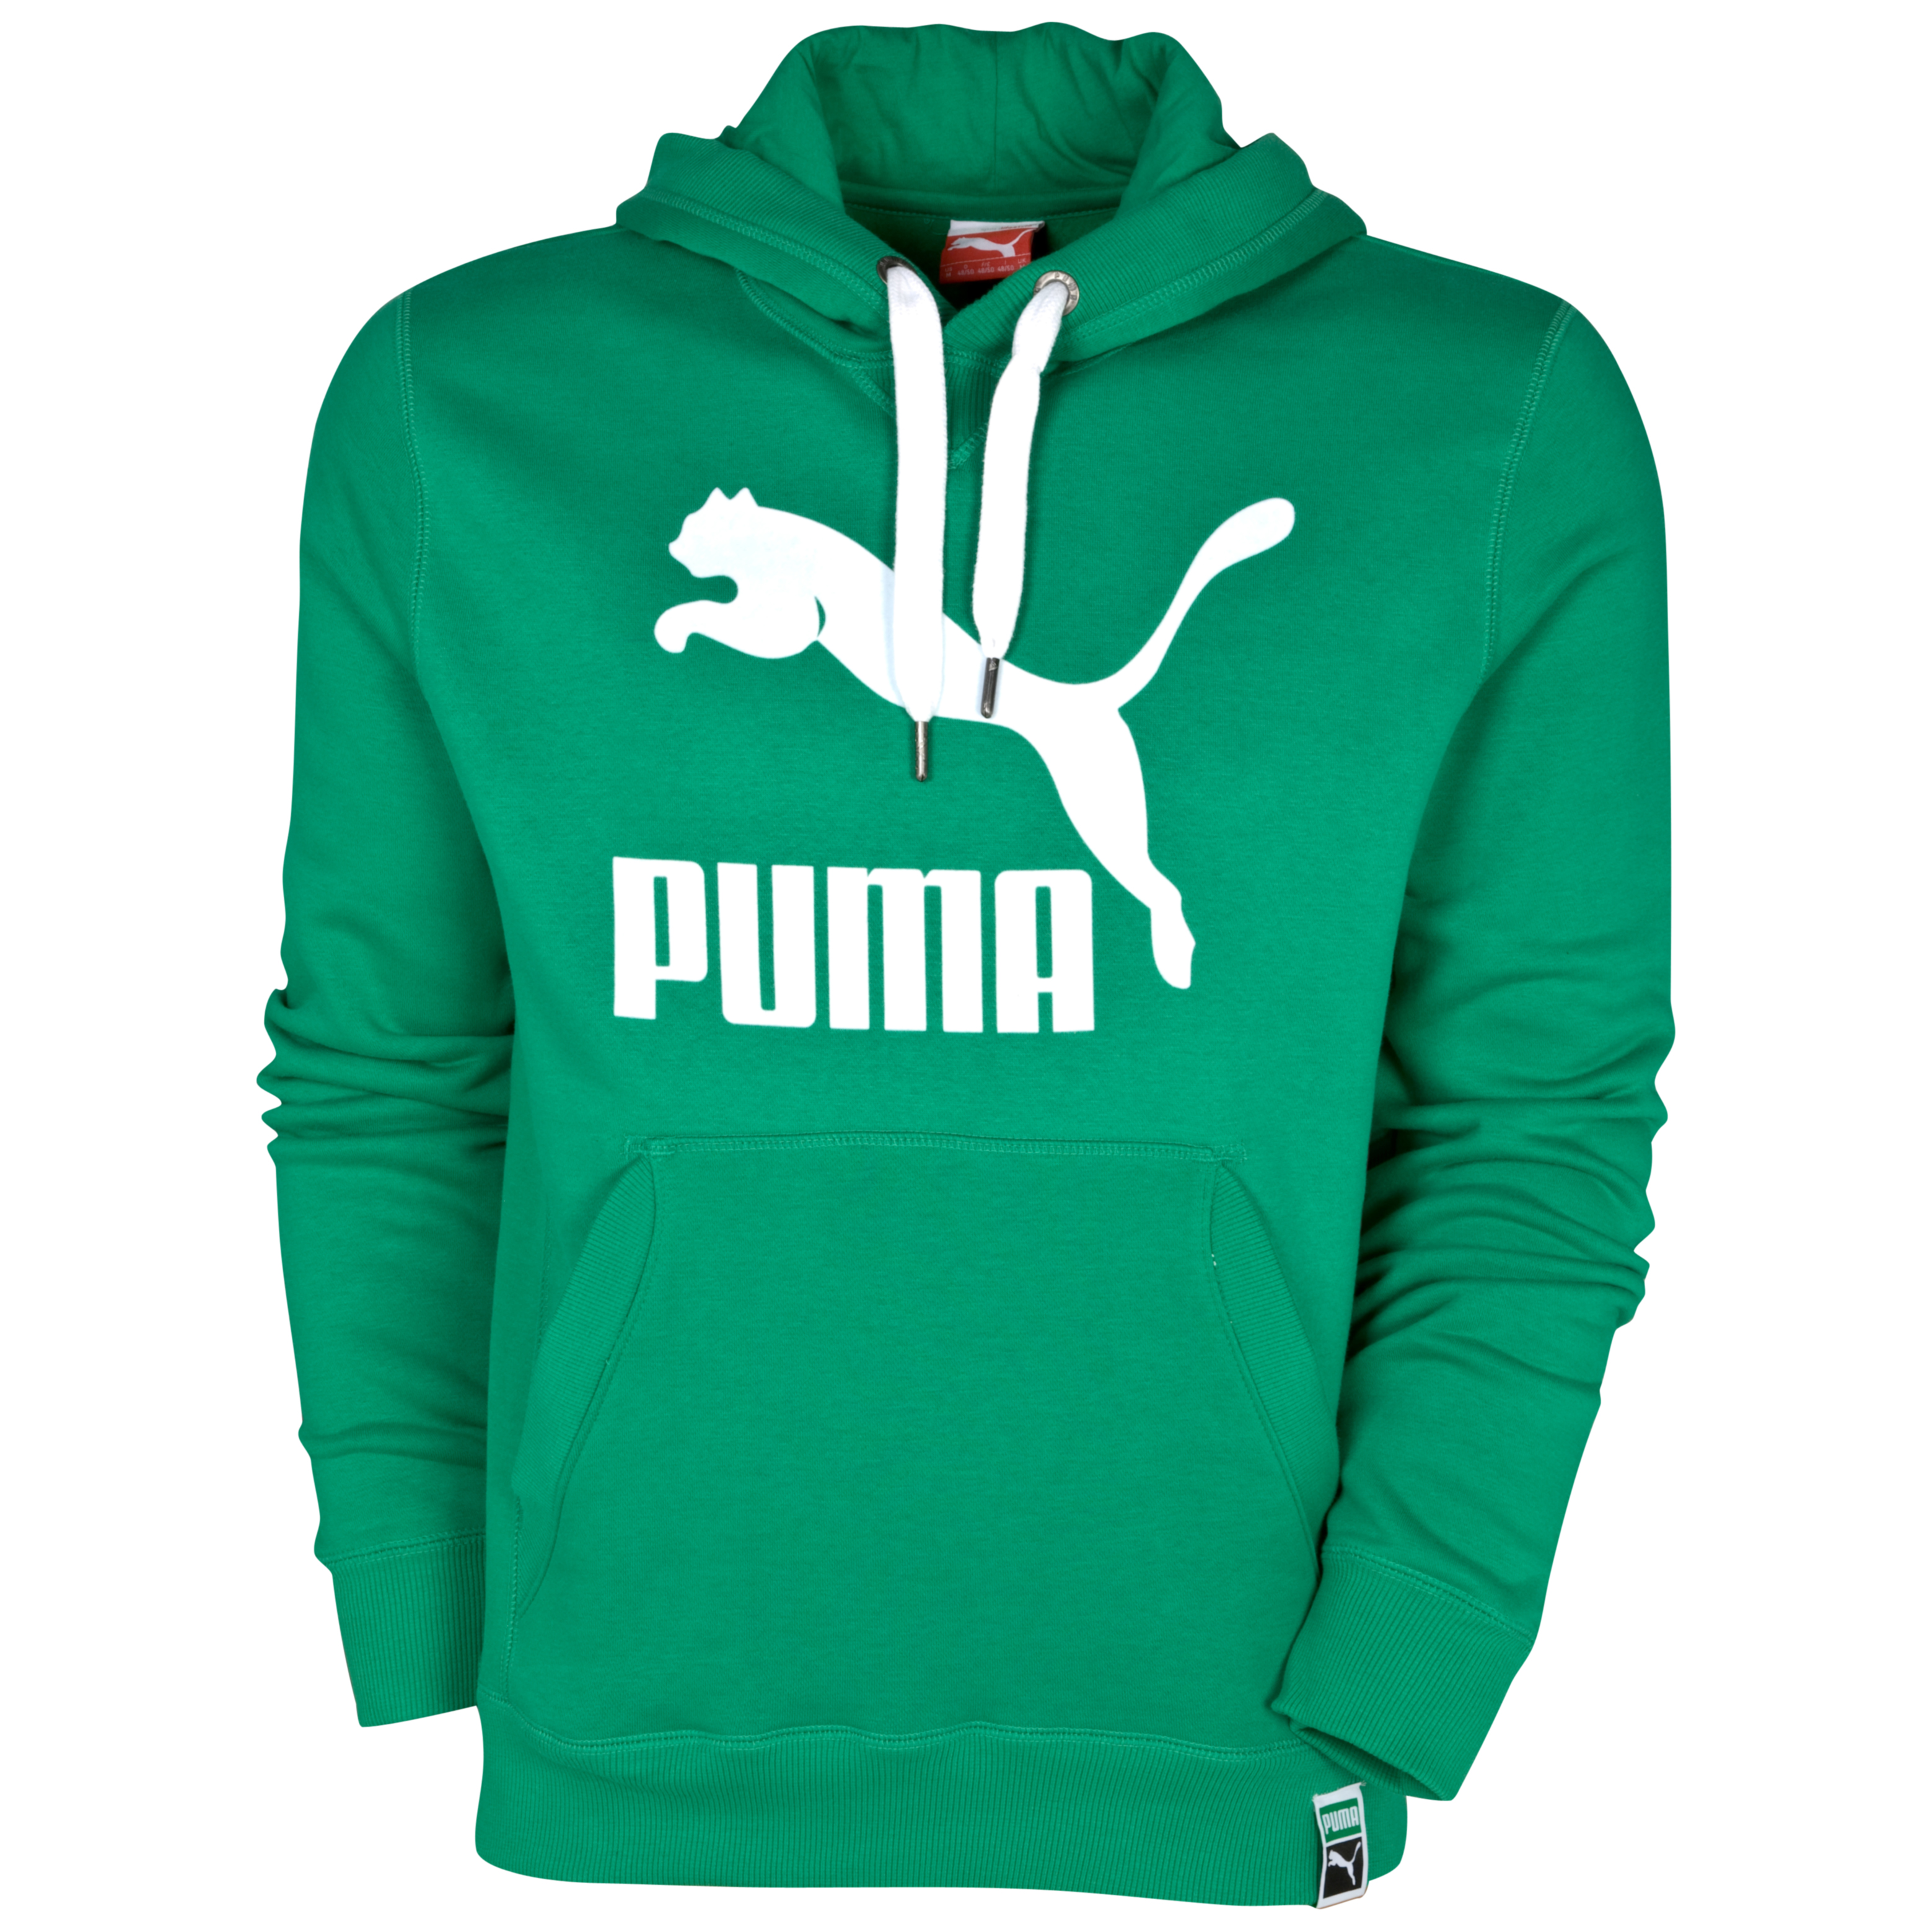 Puma Heroes OH Hooded Sweat - Jelly Bean